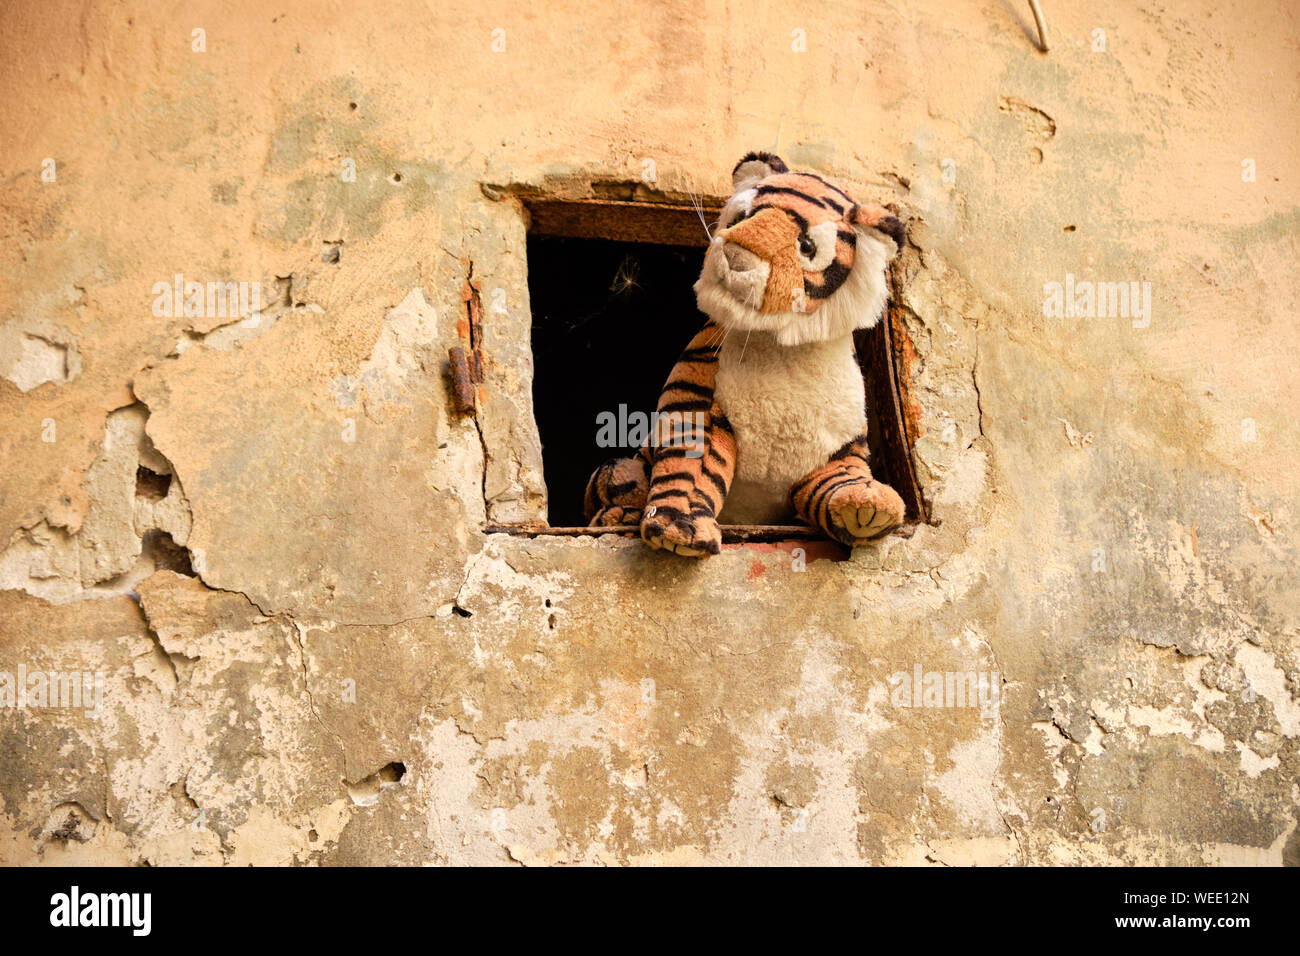 stuffed-tiger-sticking-out-window-from-animals-in-the-yard-of-lost-toys-in-lviv-ukraine-WEE12N.jpg